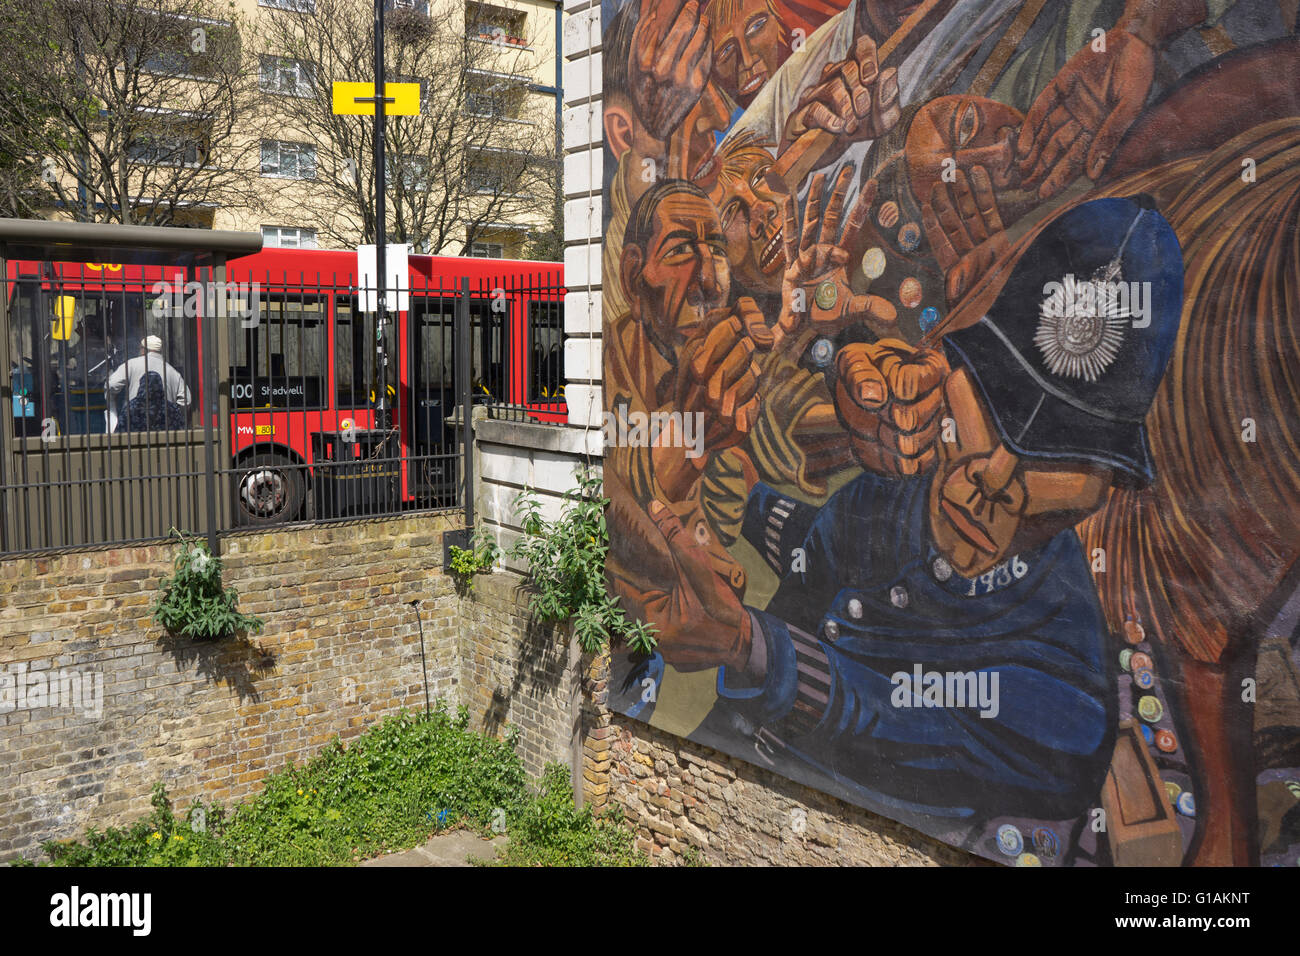 The Battle of Cable Street mural in east London, UK - Stock Image